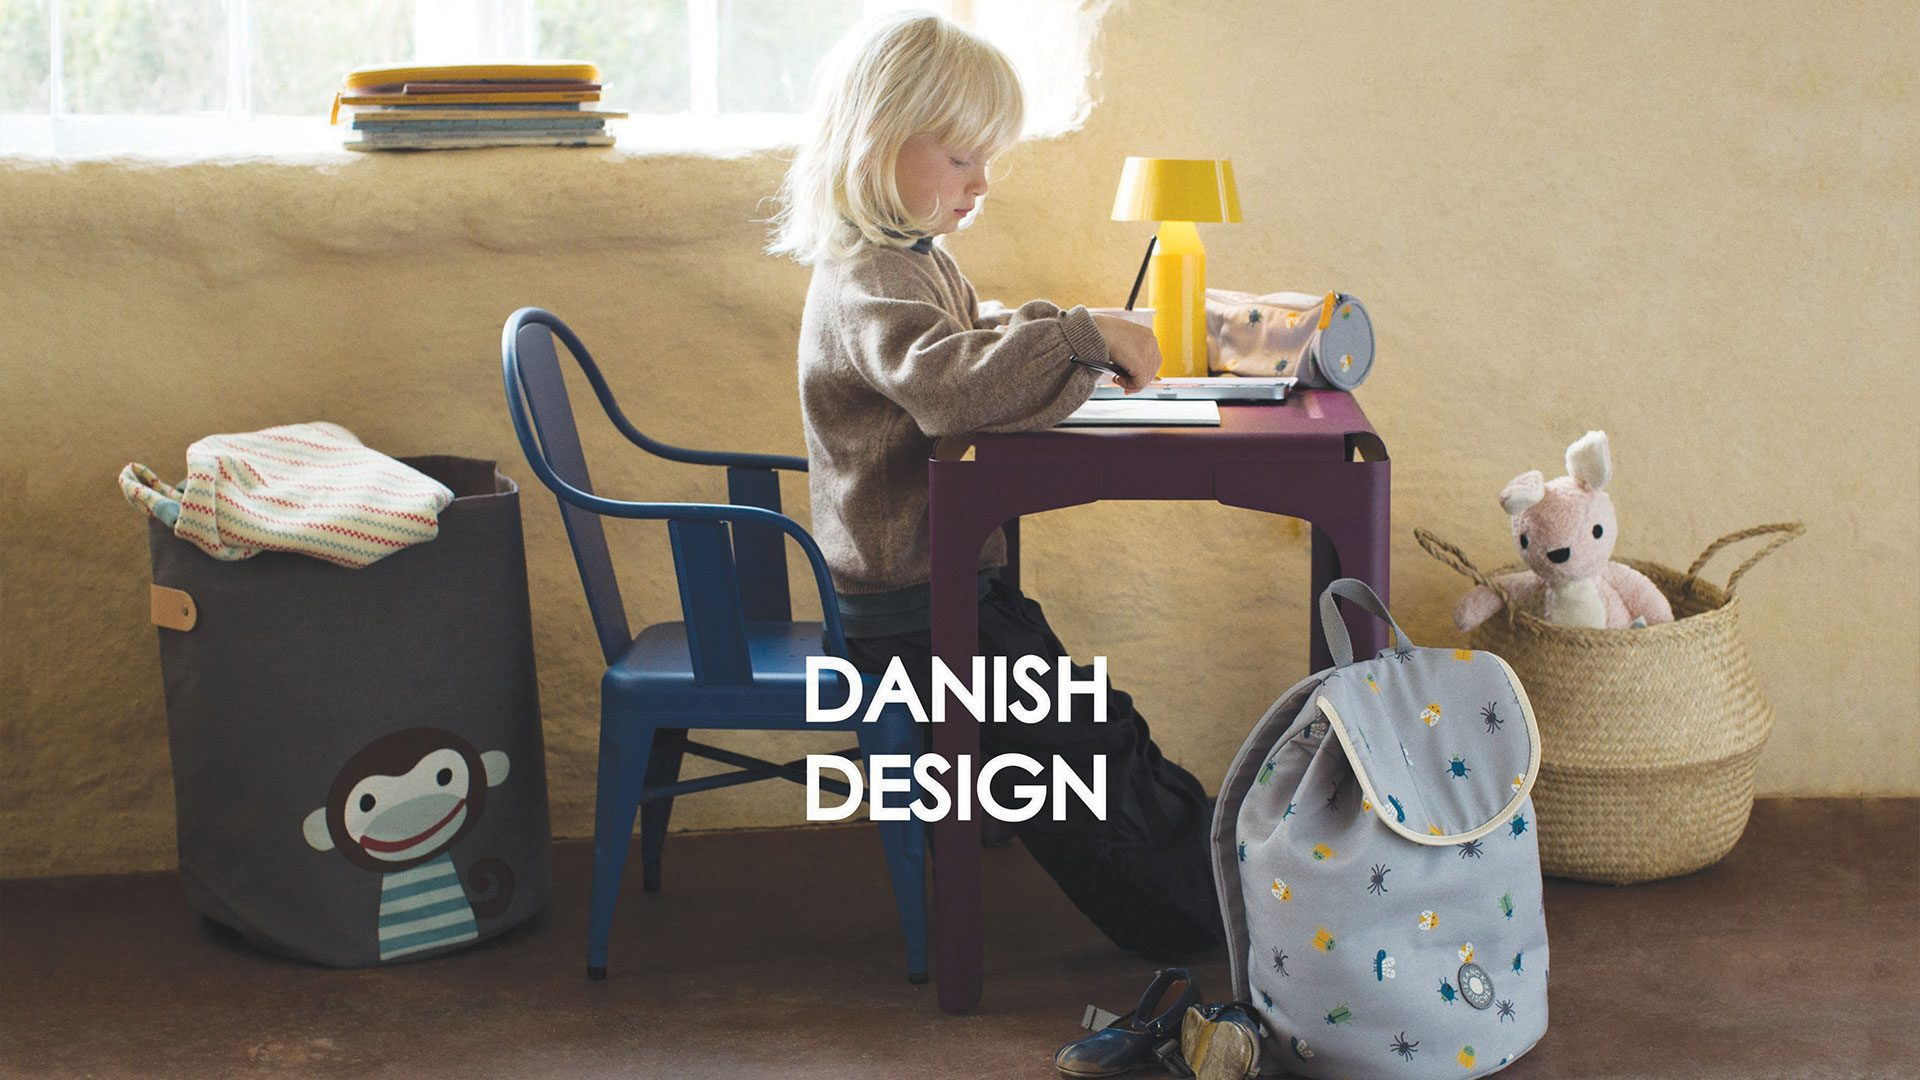 3-DANISH-DESIGN-with-girl